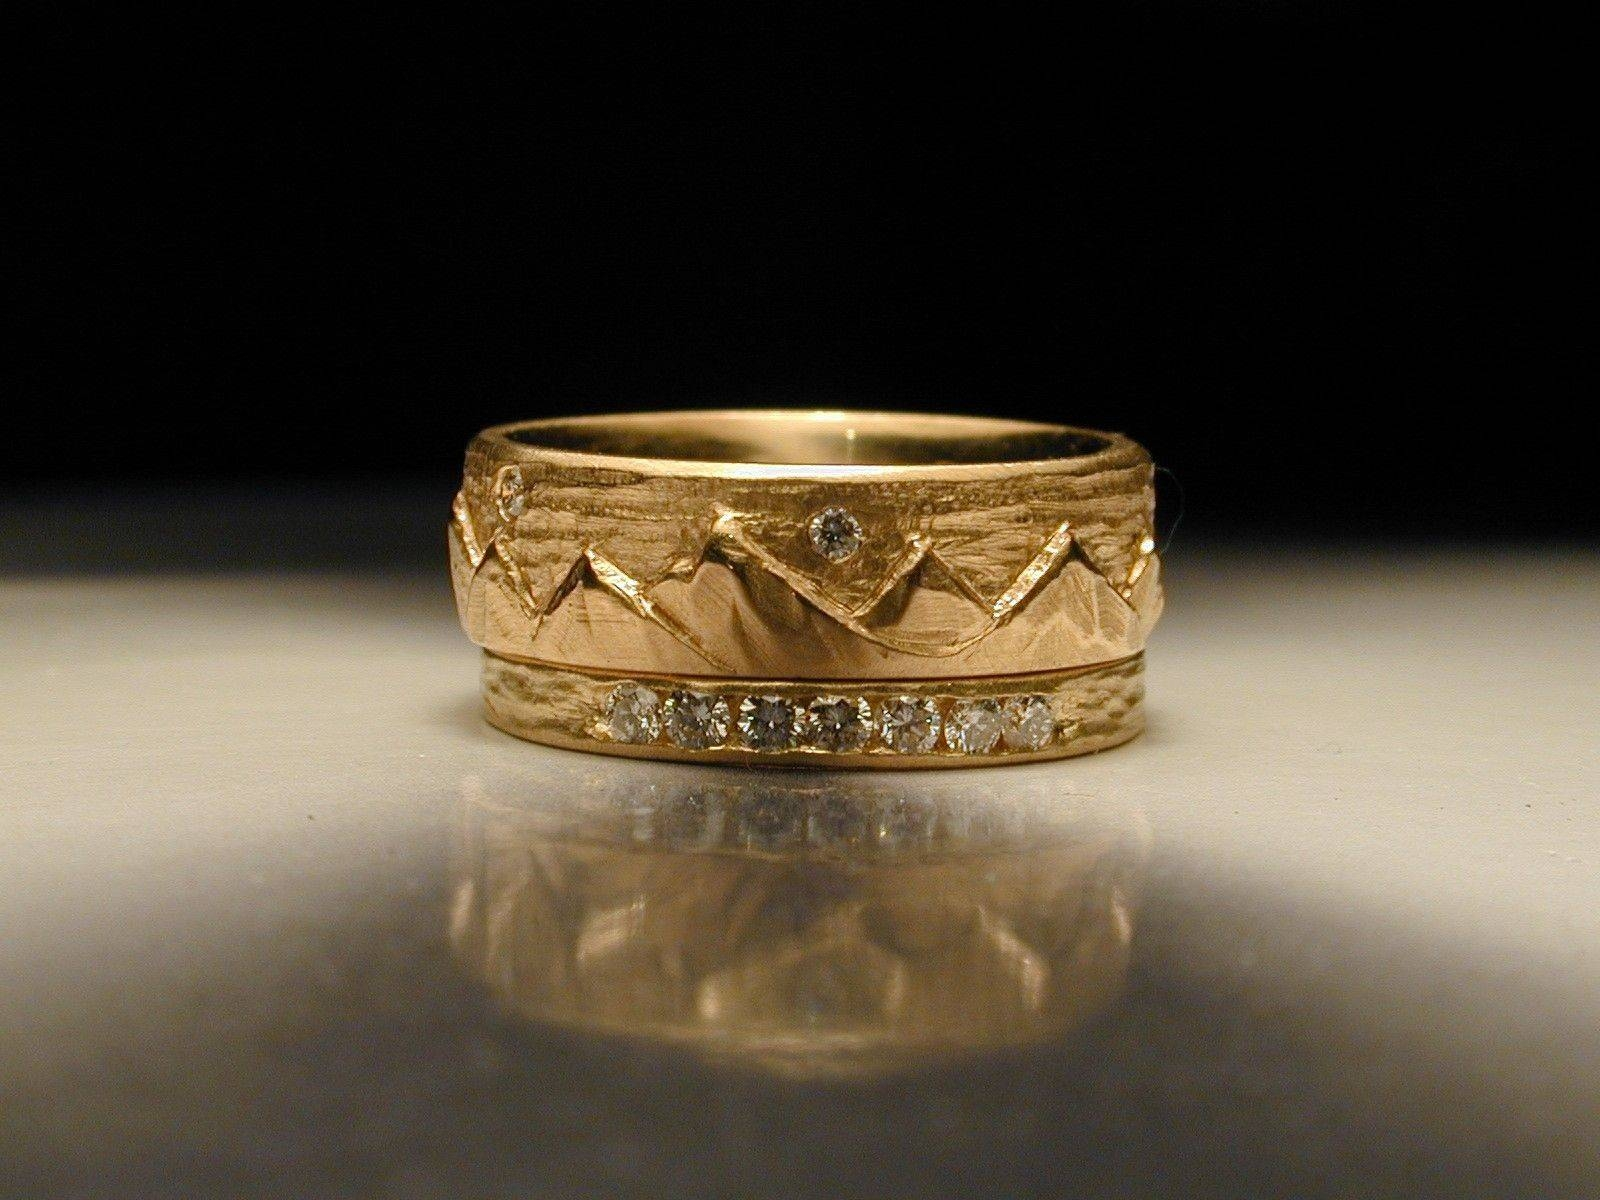 s mountain womens carved custom men mens by rings jimdailing crafted hand women made or wedding